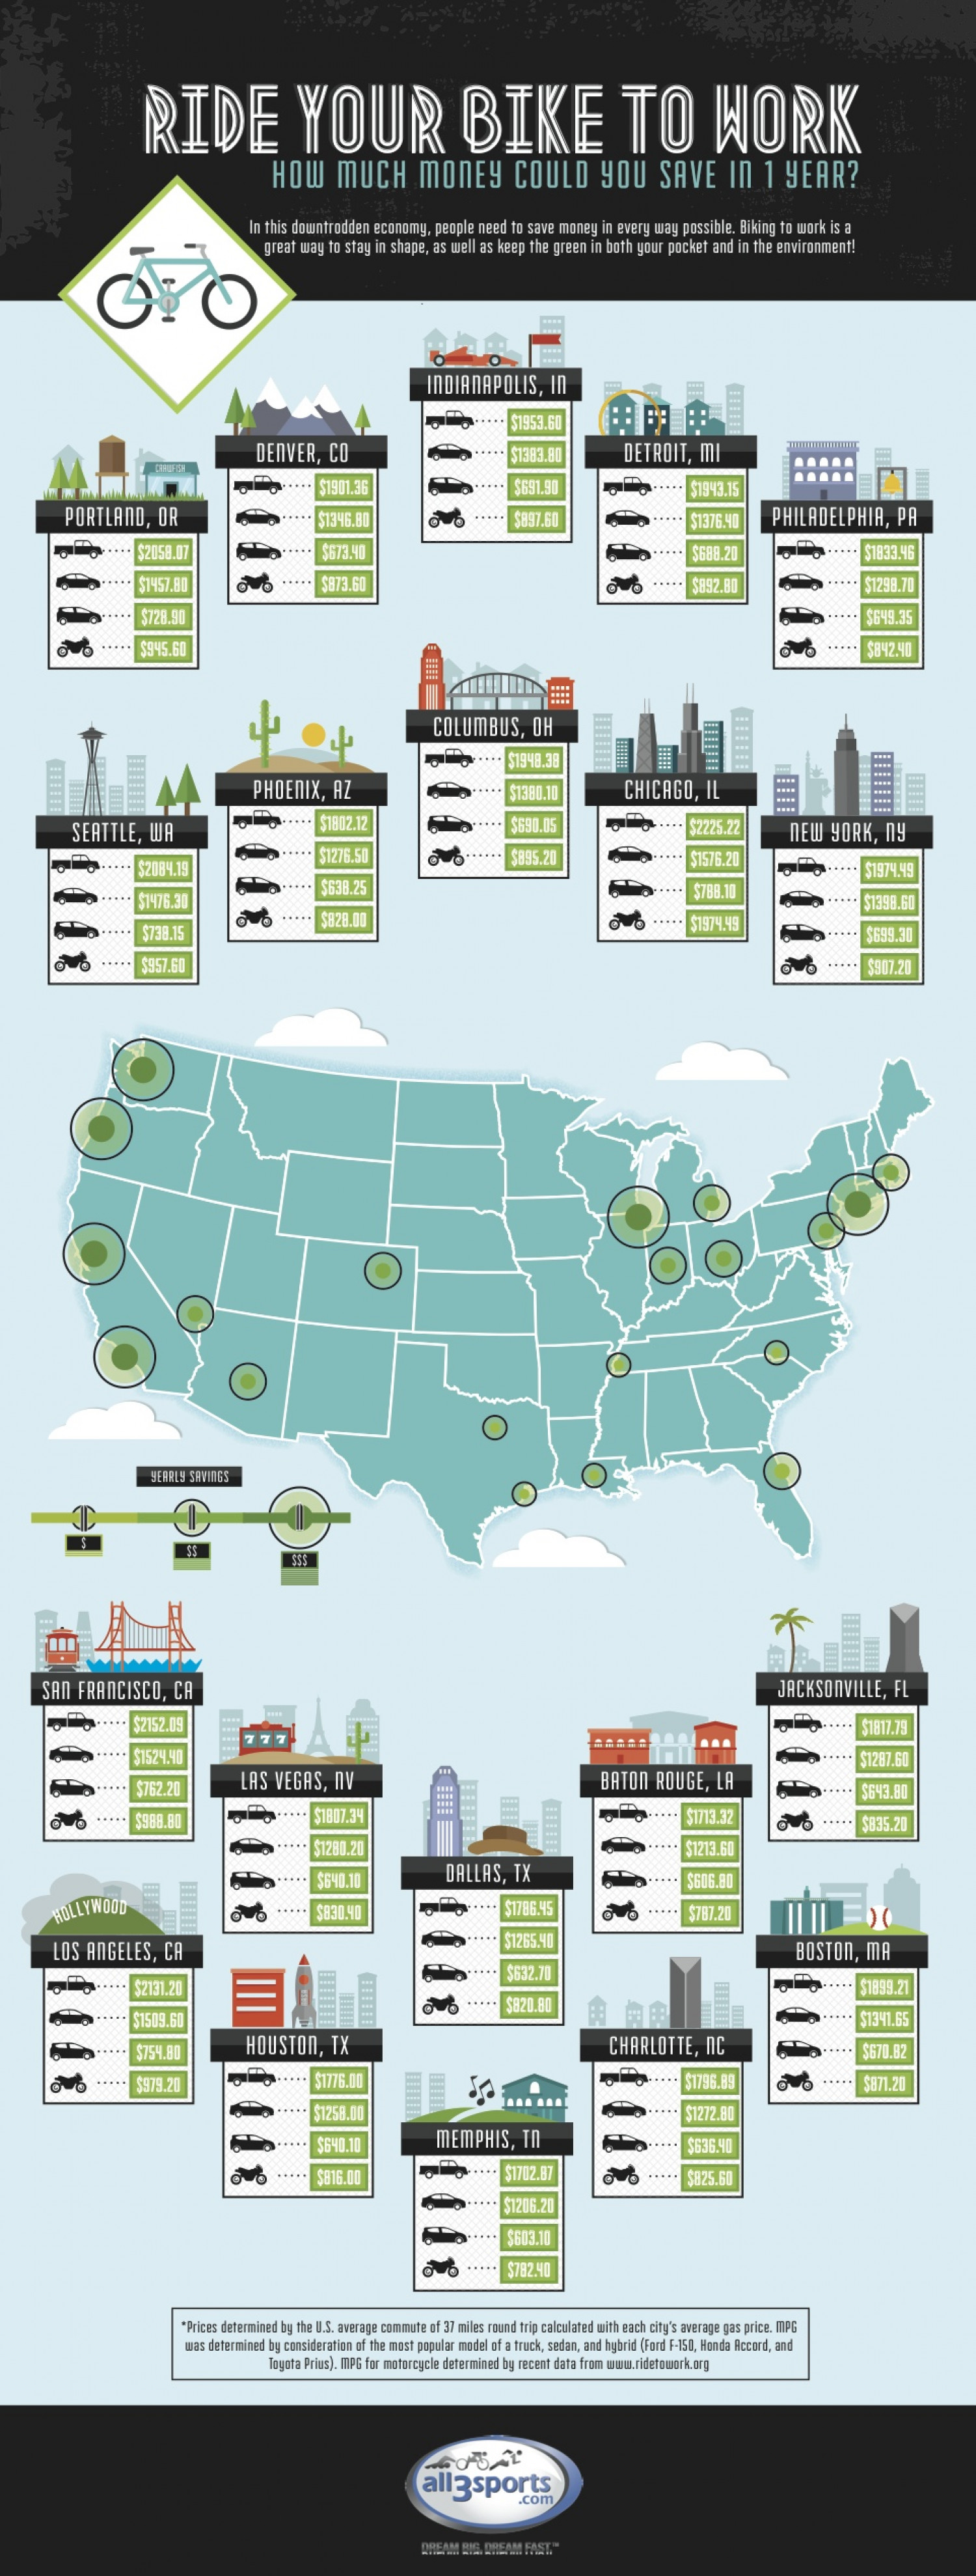 Ride Your Bike to Work Infographic